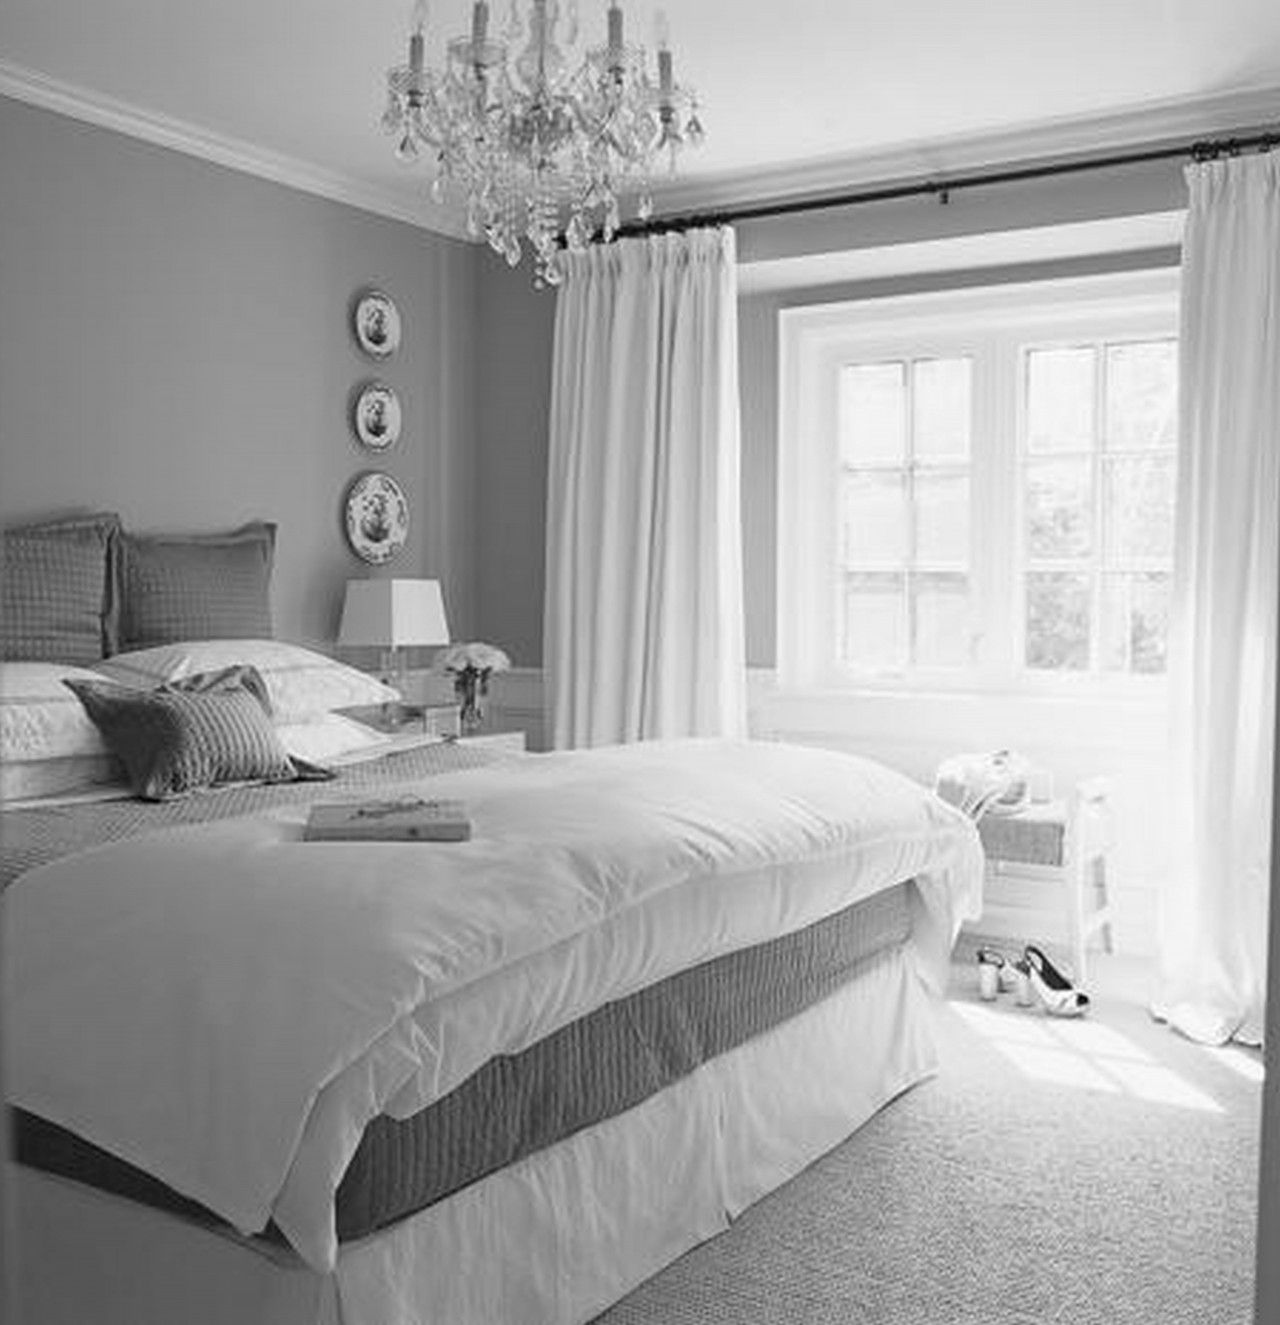 Bedroom color ideas grey - Agreeable Teenage Bedroom Ideas Complexion Entrancing Little Girls Bedroom Ideas Marvelous Decoration Coloration Bedroom Colors Greysecret Ice Light Grey